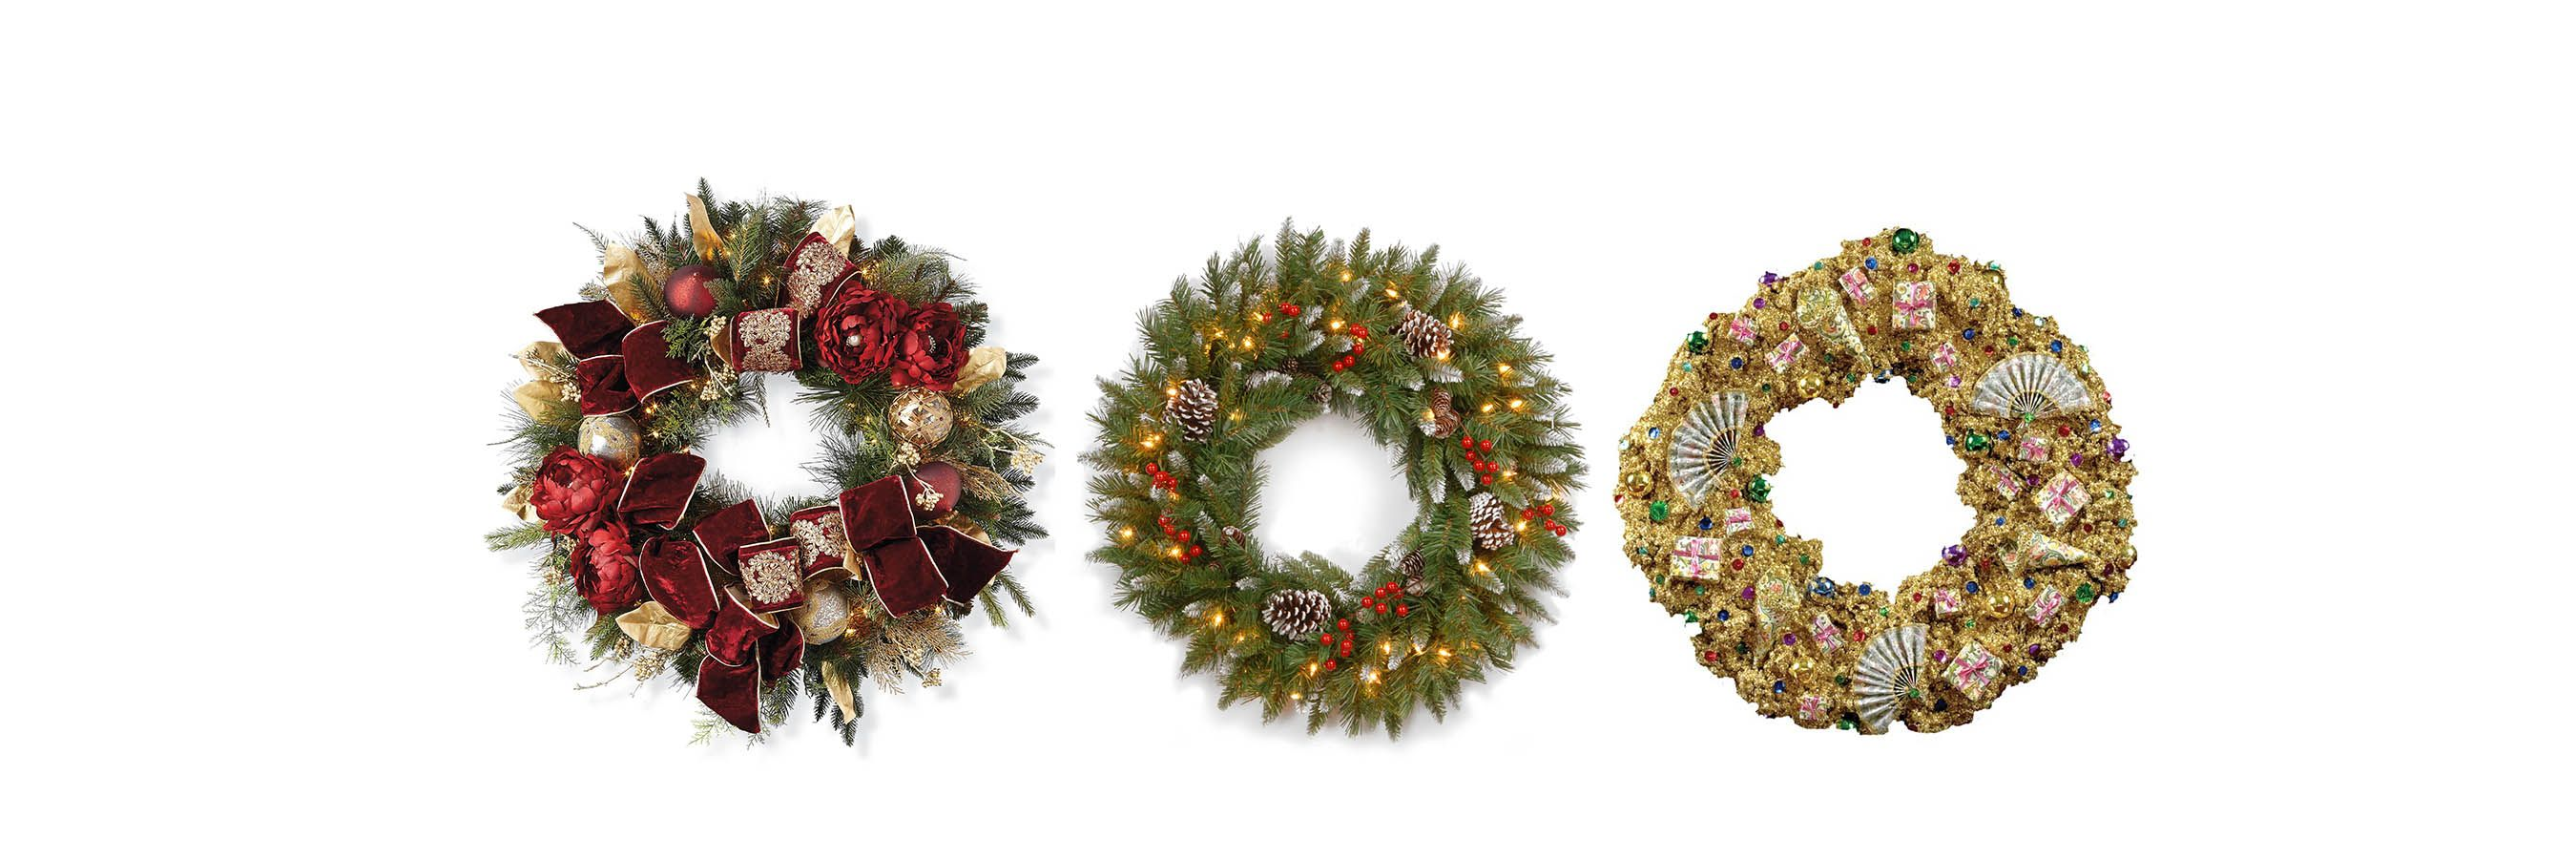 Delicieux Christmas Wreaths